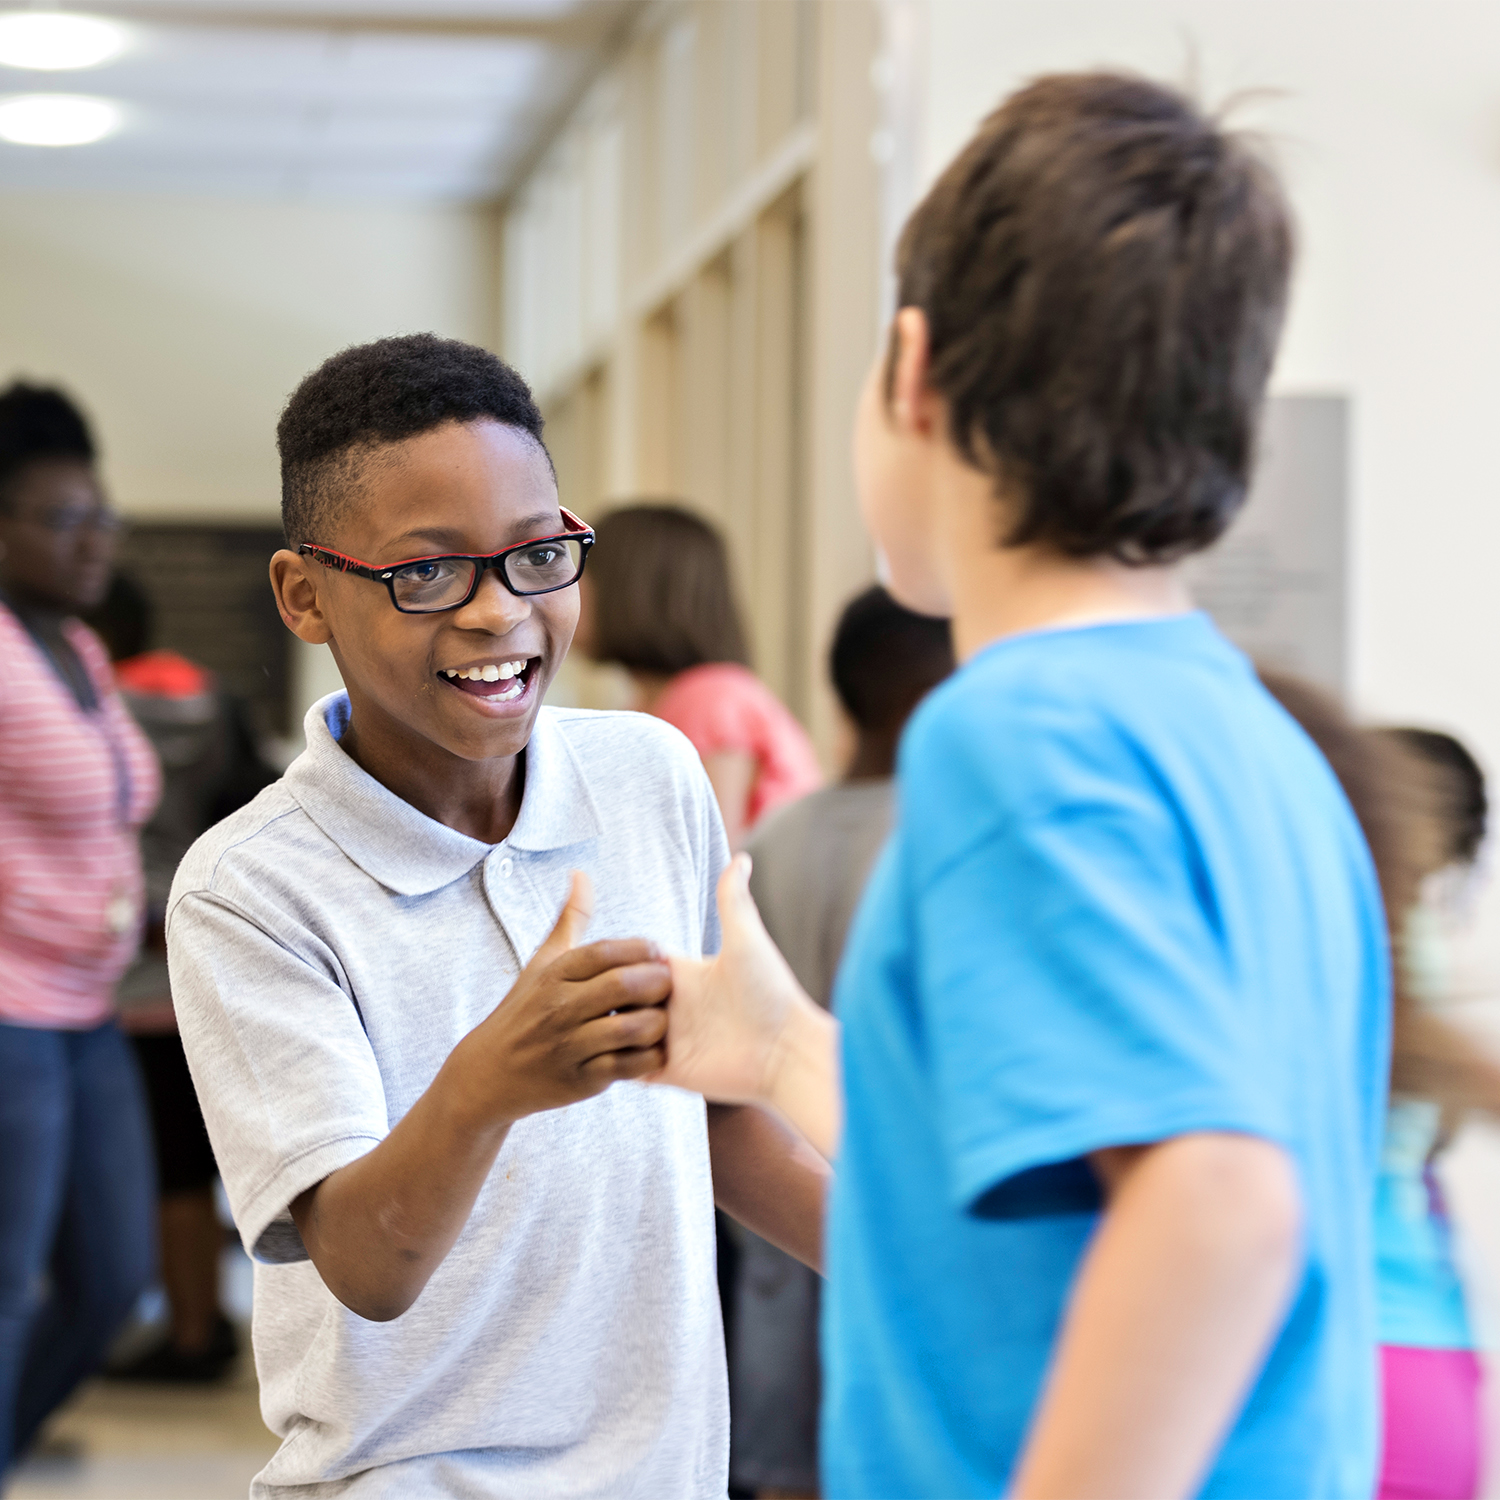 Two young boys shaking hands and smiling in the hallway.